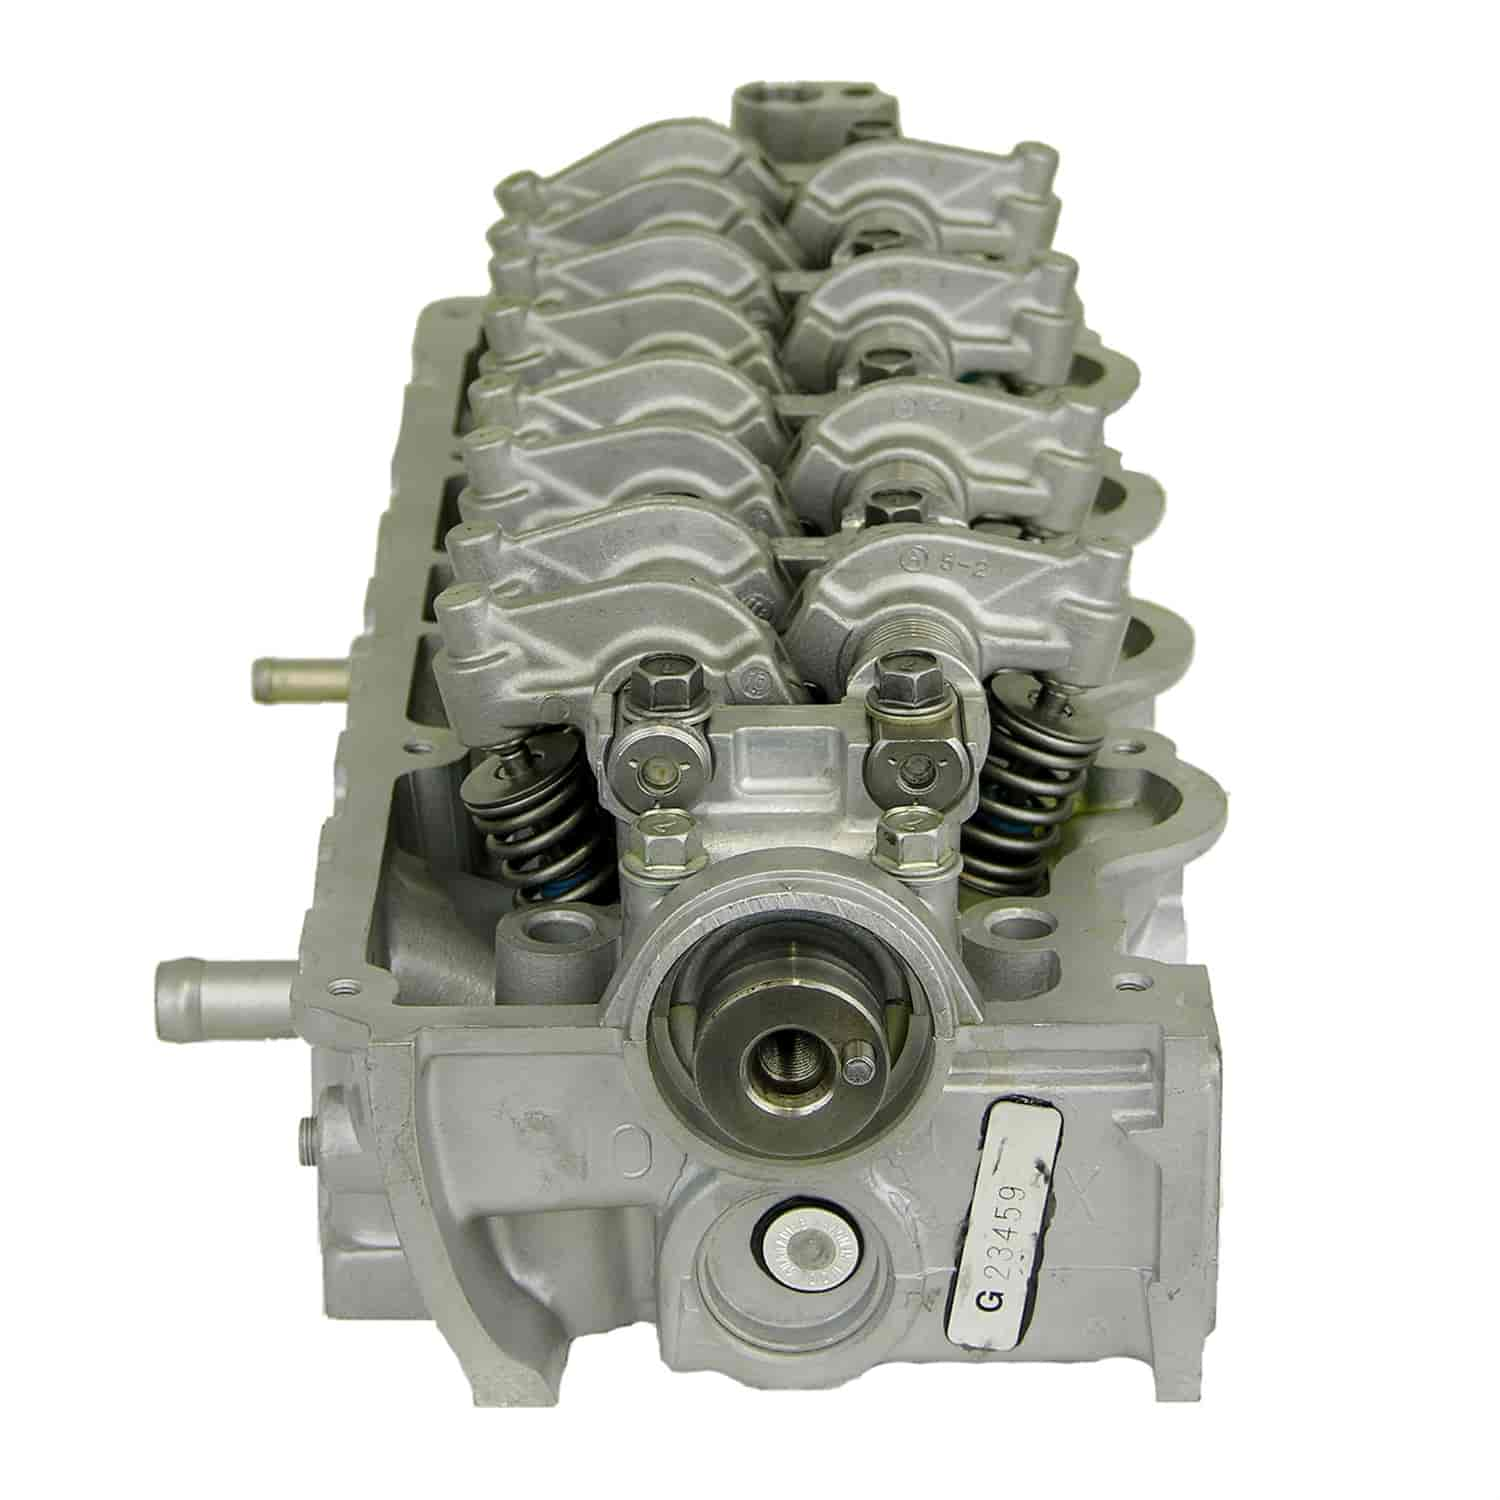 ATK Engines Remanufactured Cylinder Head for 1995-1999 Hyundai Accent with  1 5L L4